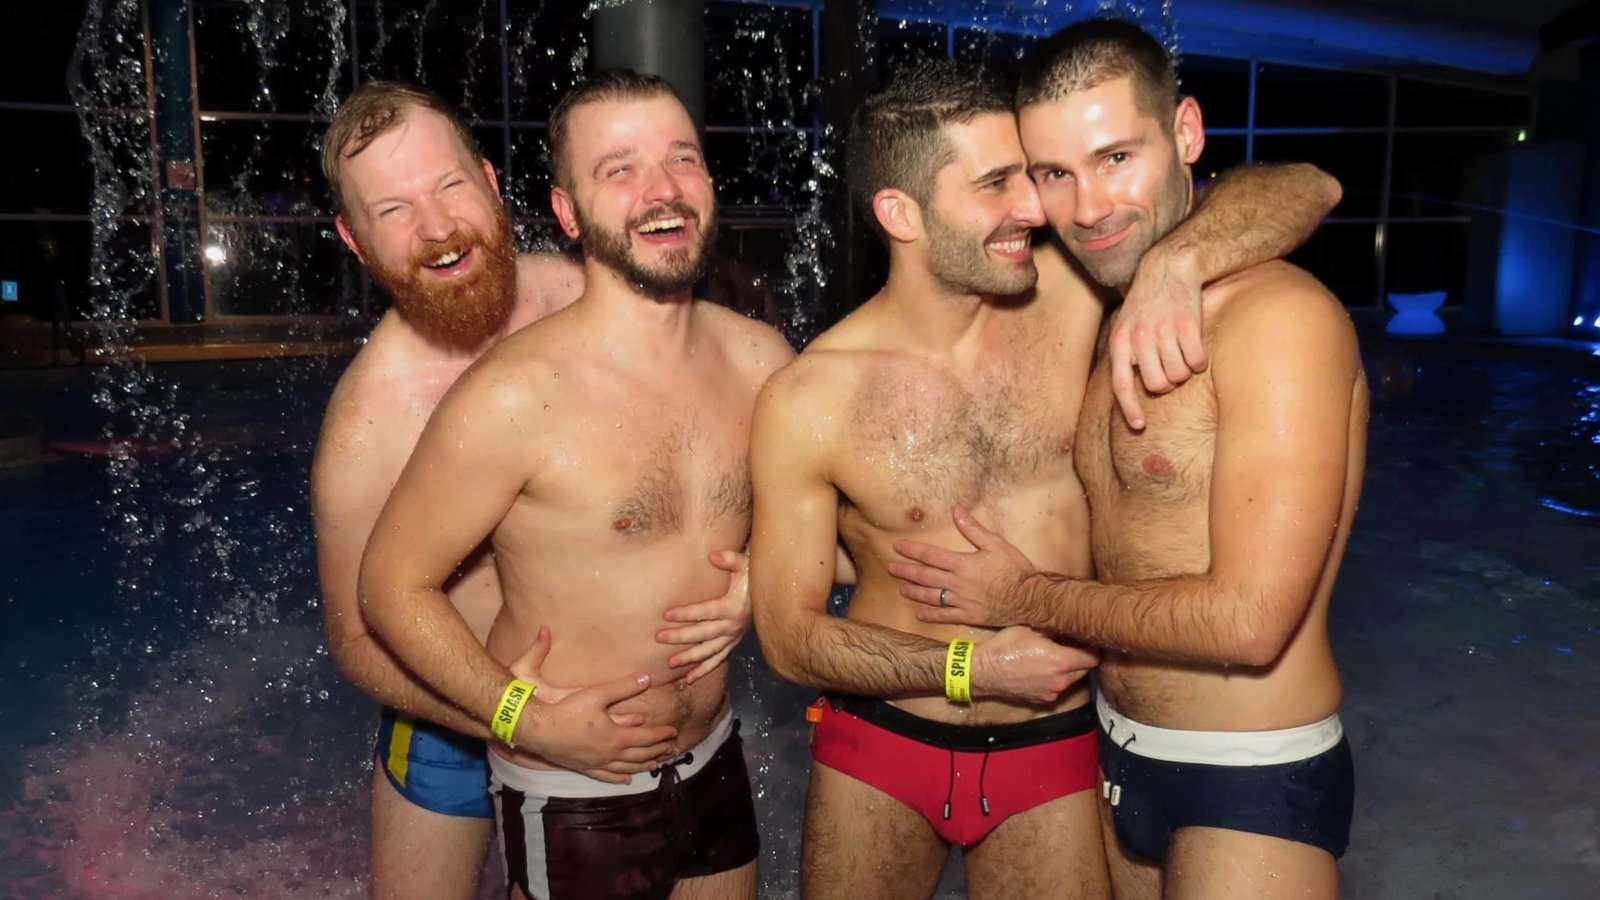 Winter Rendezvous Gay Ski Week takes place in Vermont and is packed full of fun activities for on the slopes as well as at night